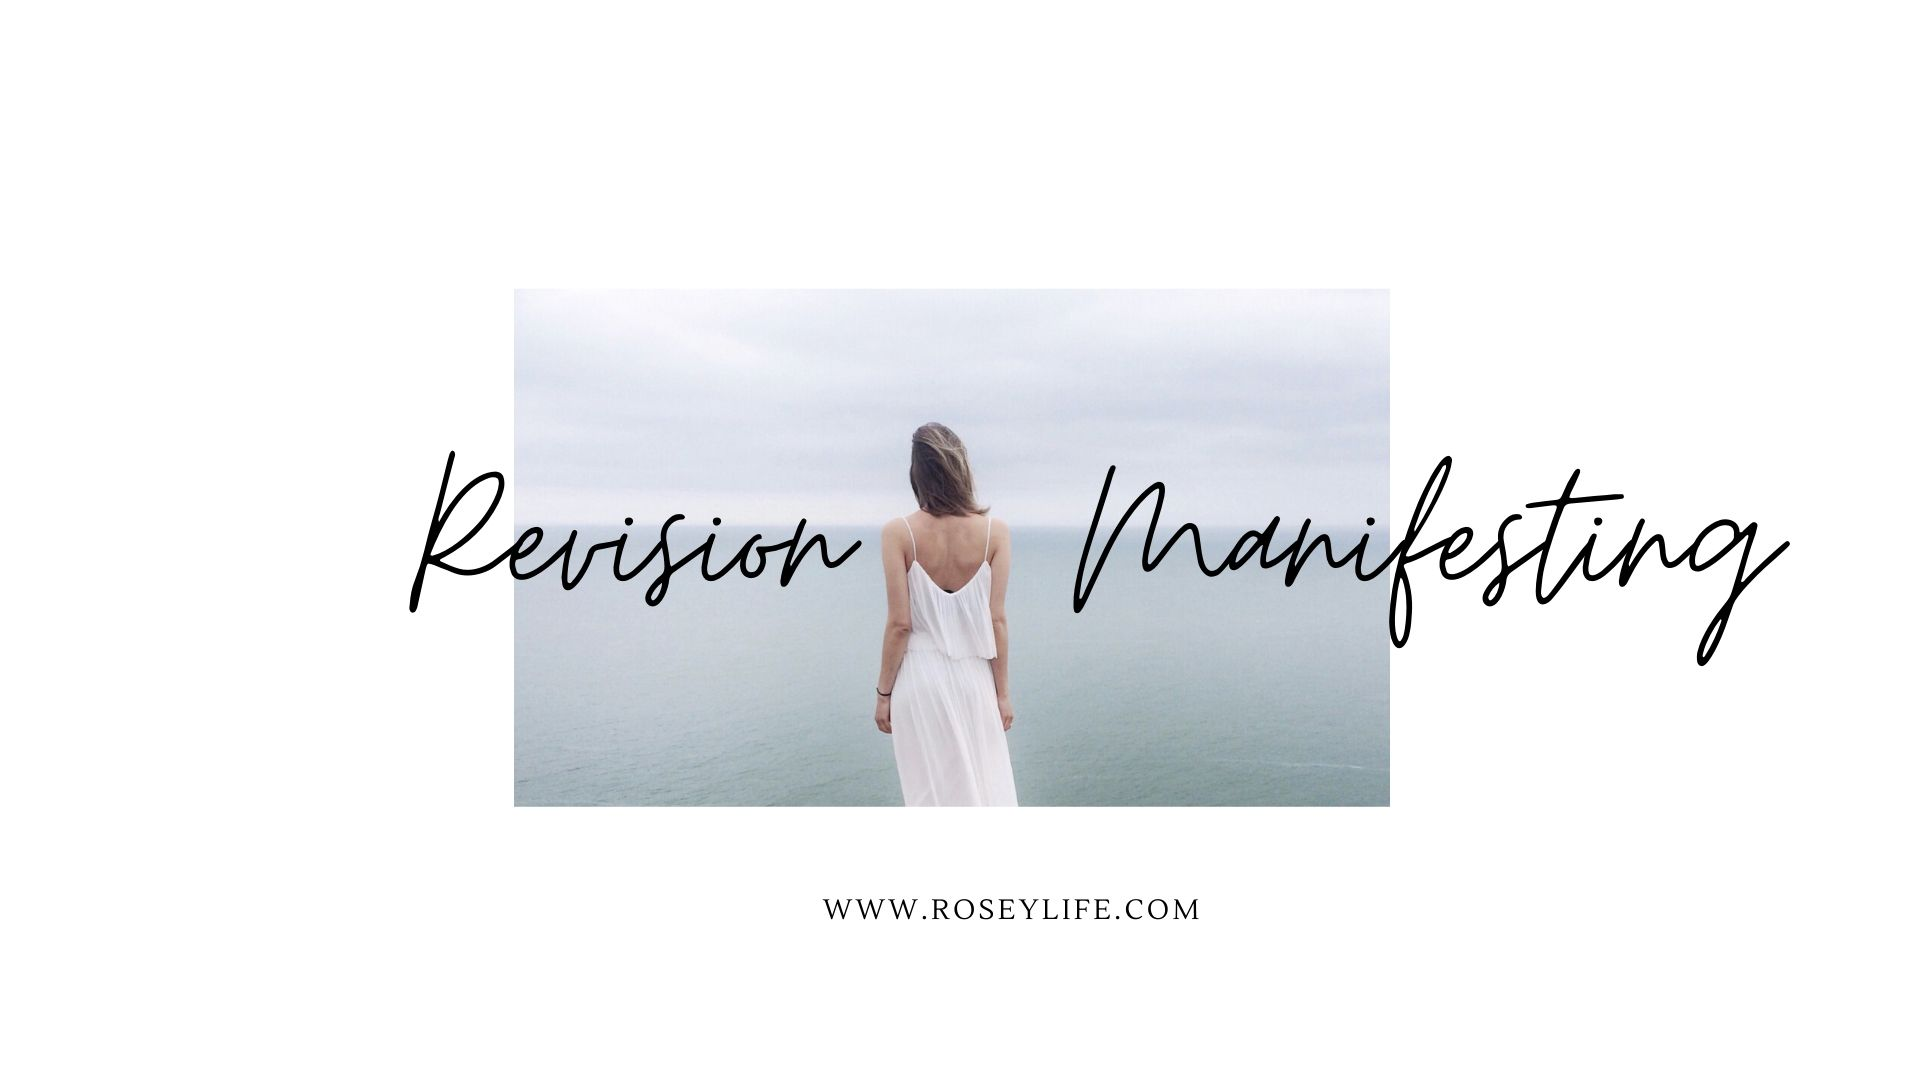 How To Use Revision for Manifesting